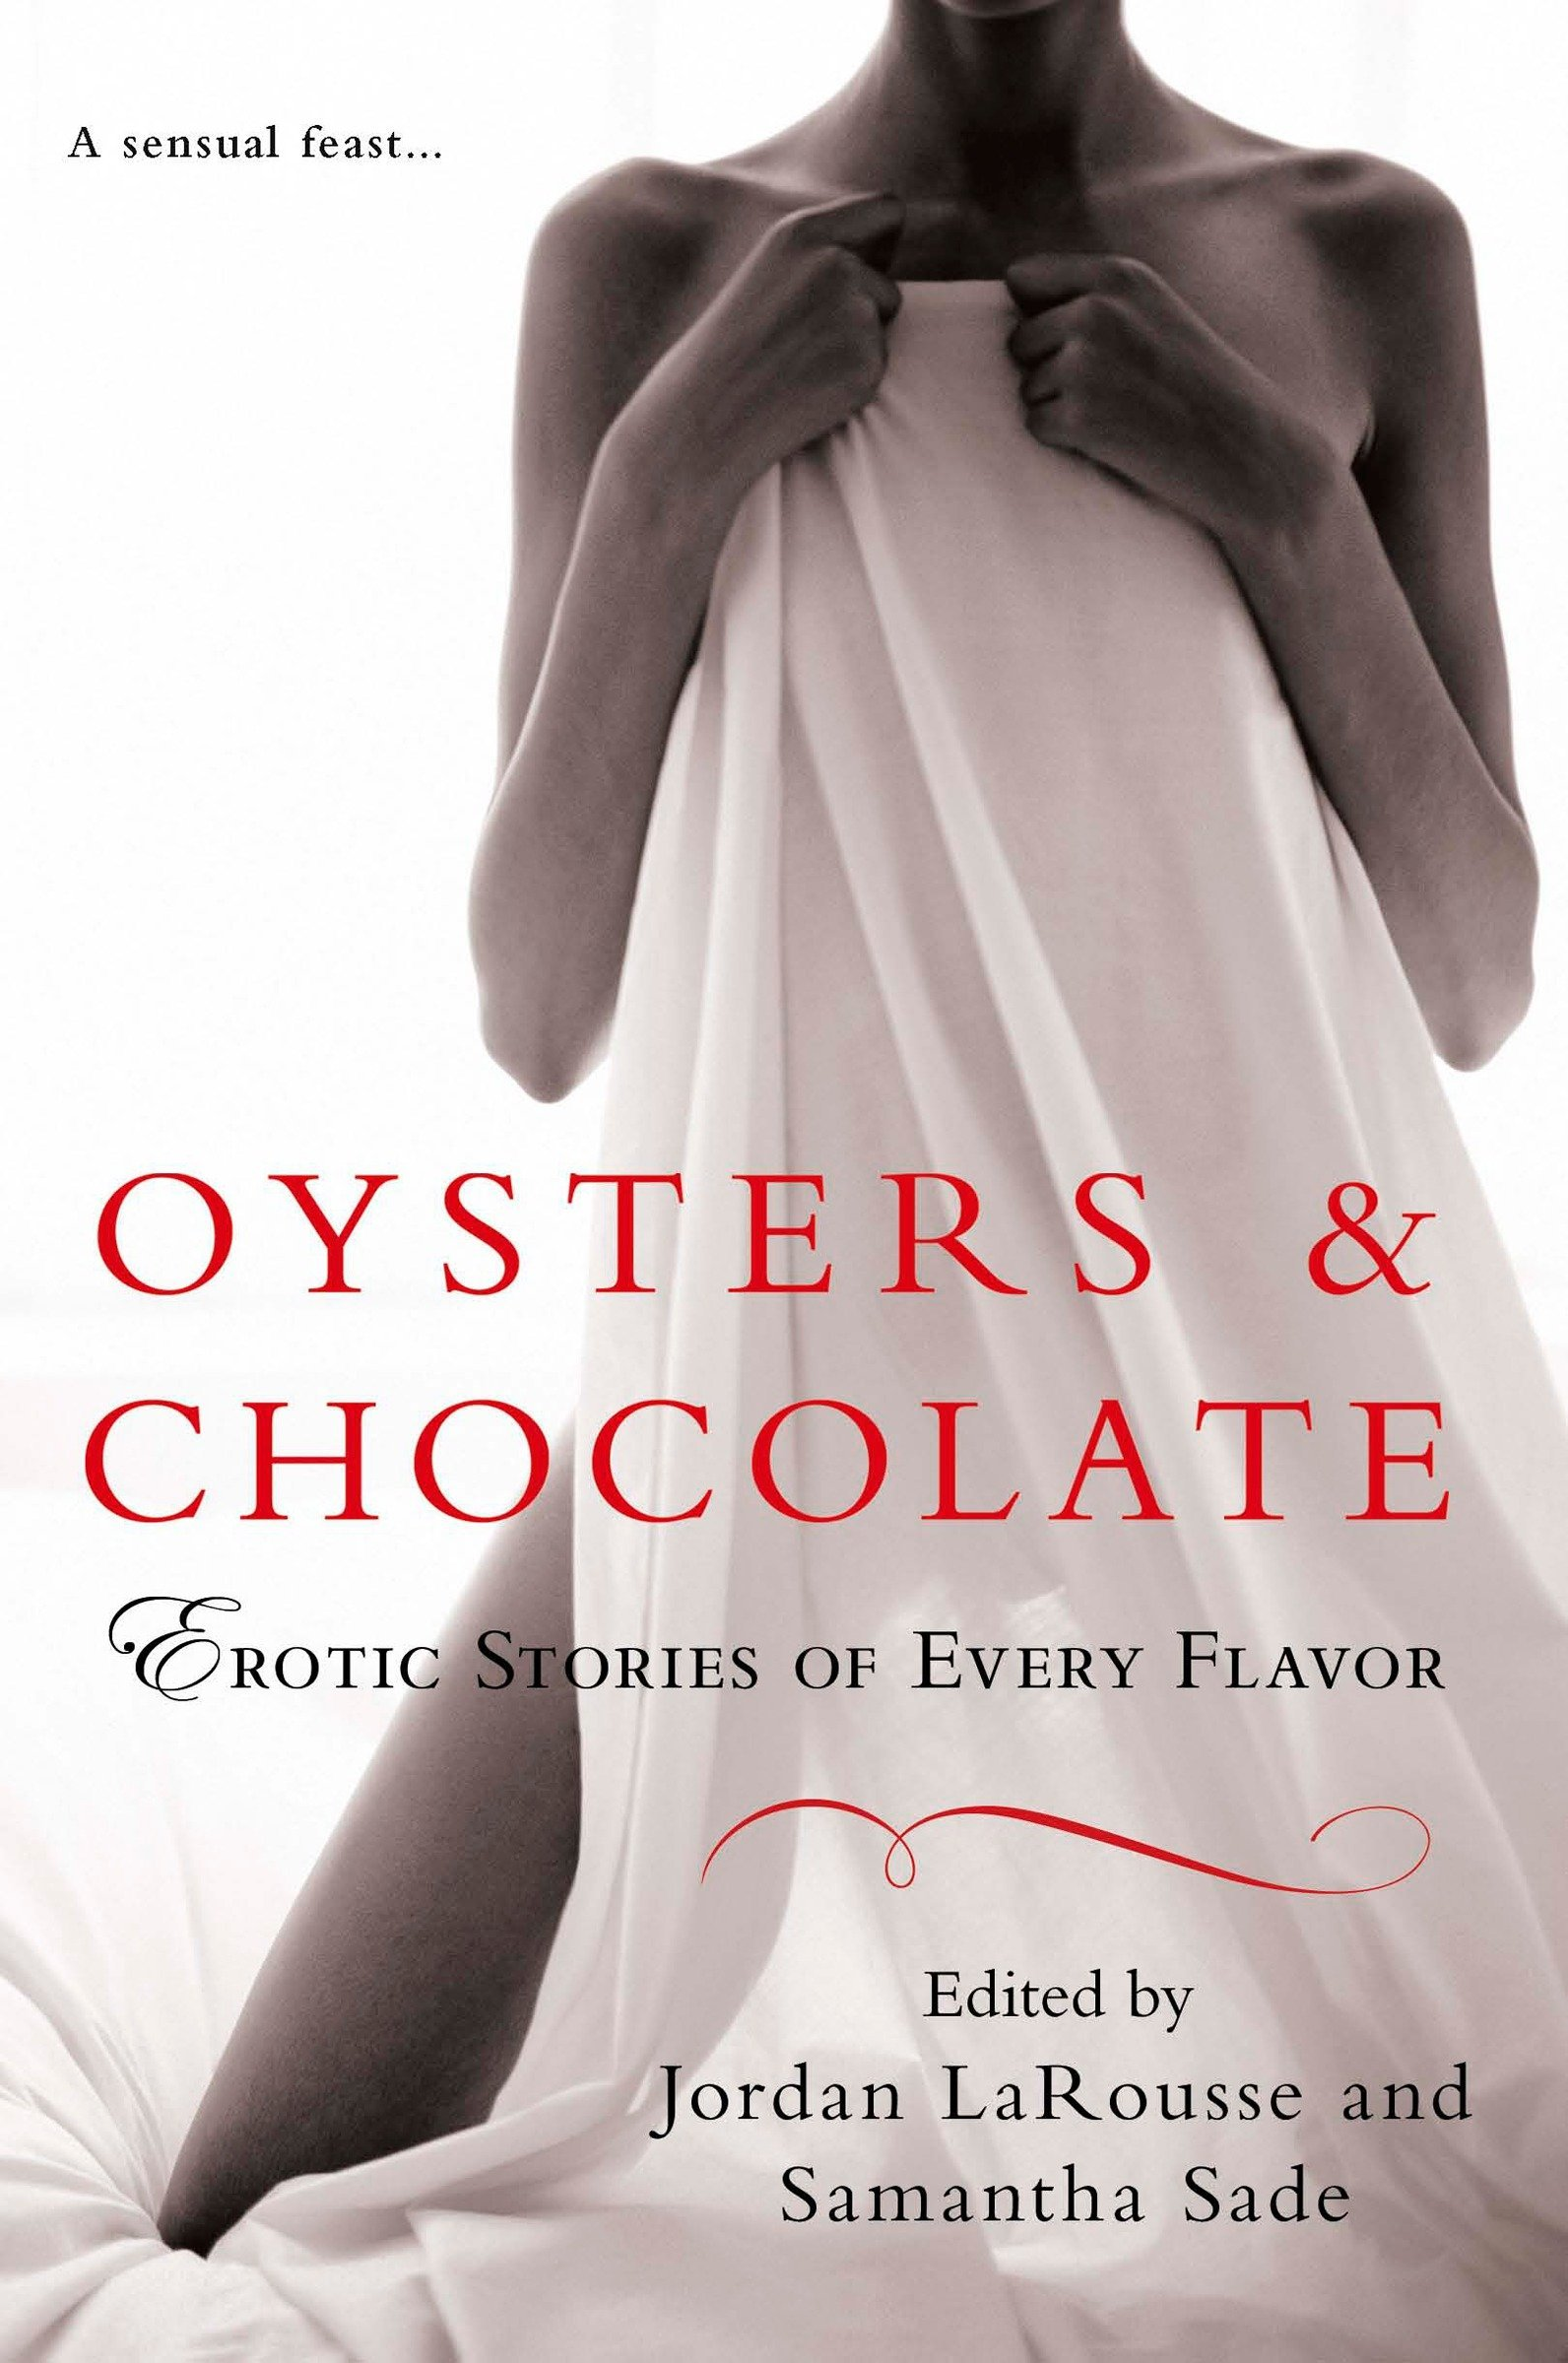 Amazon Com Oysters Chocolate Erotic Stories Of Every Flavor 9780451226822 Jordan Larousse Samantha Sade Books